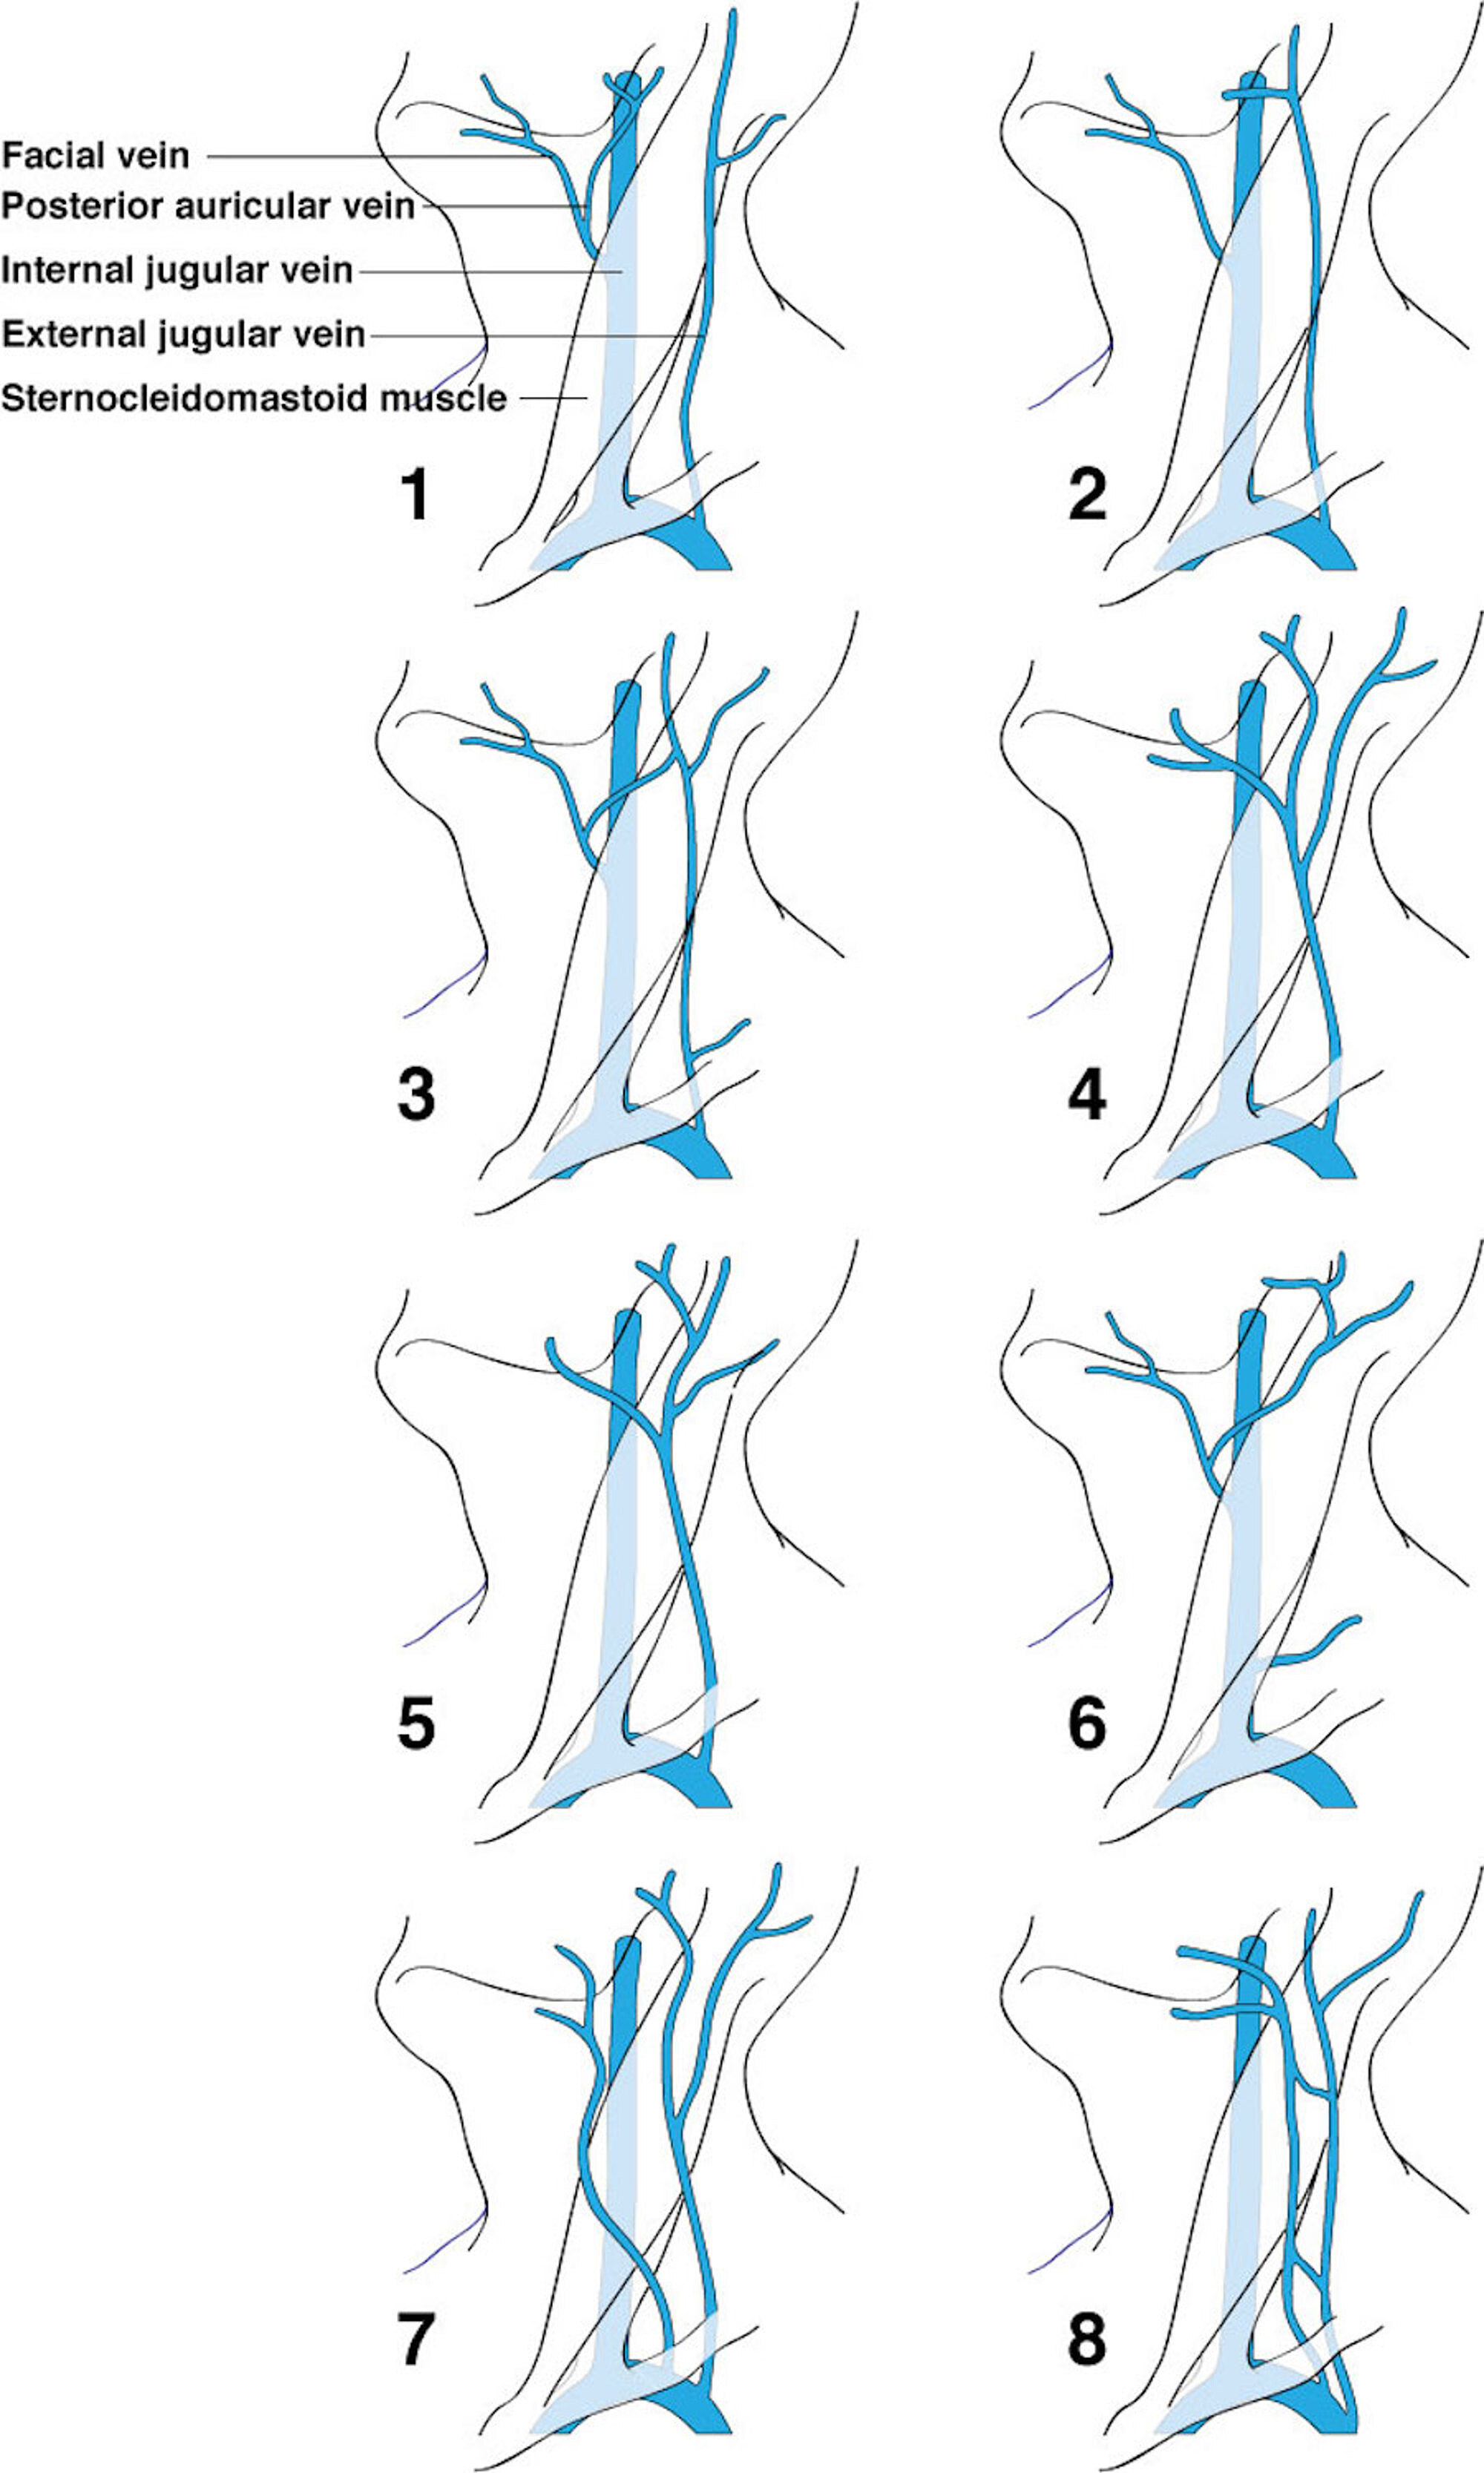 Cureus   Review of the Variations of the Superficial Veins of the Neck